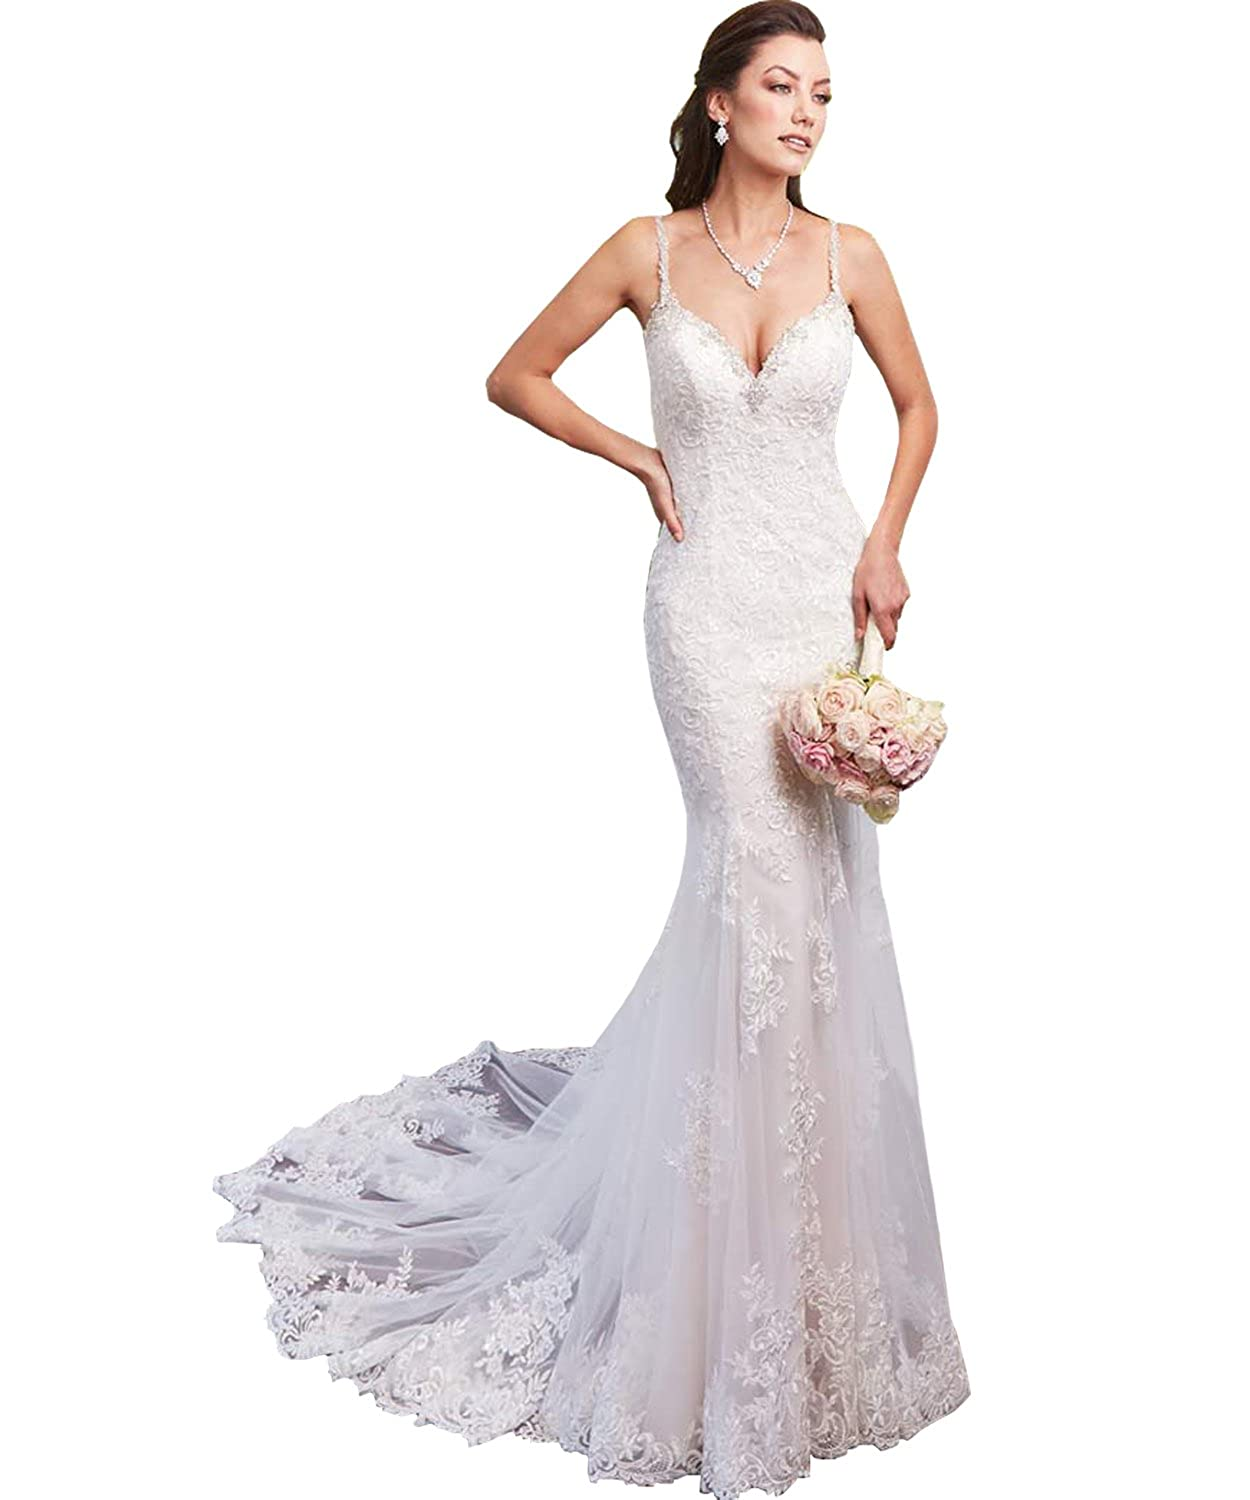 c45cdf486d Yilisclothing Women s Spaghetti Straps Deep V Neck Lace Mermaid Wedding  Dress Sexy Backless Beaded Beach Bridal Gown at Amazon Women s Clothing  store